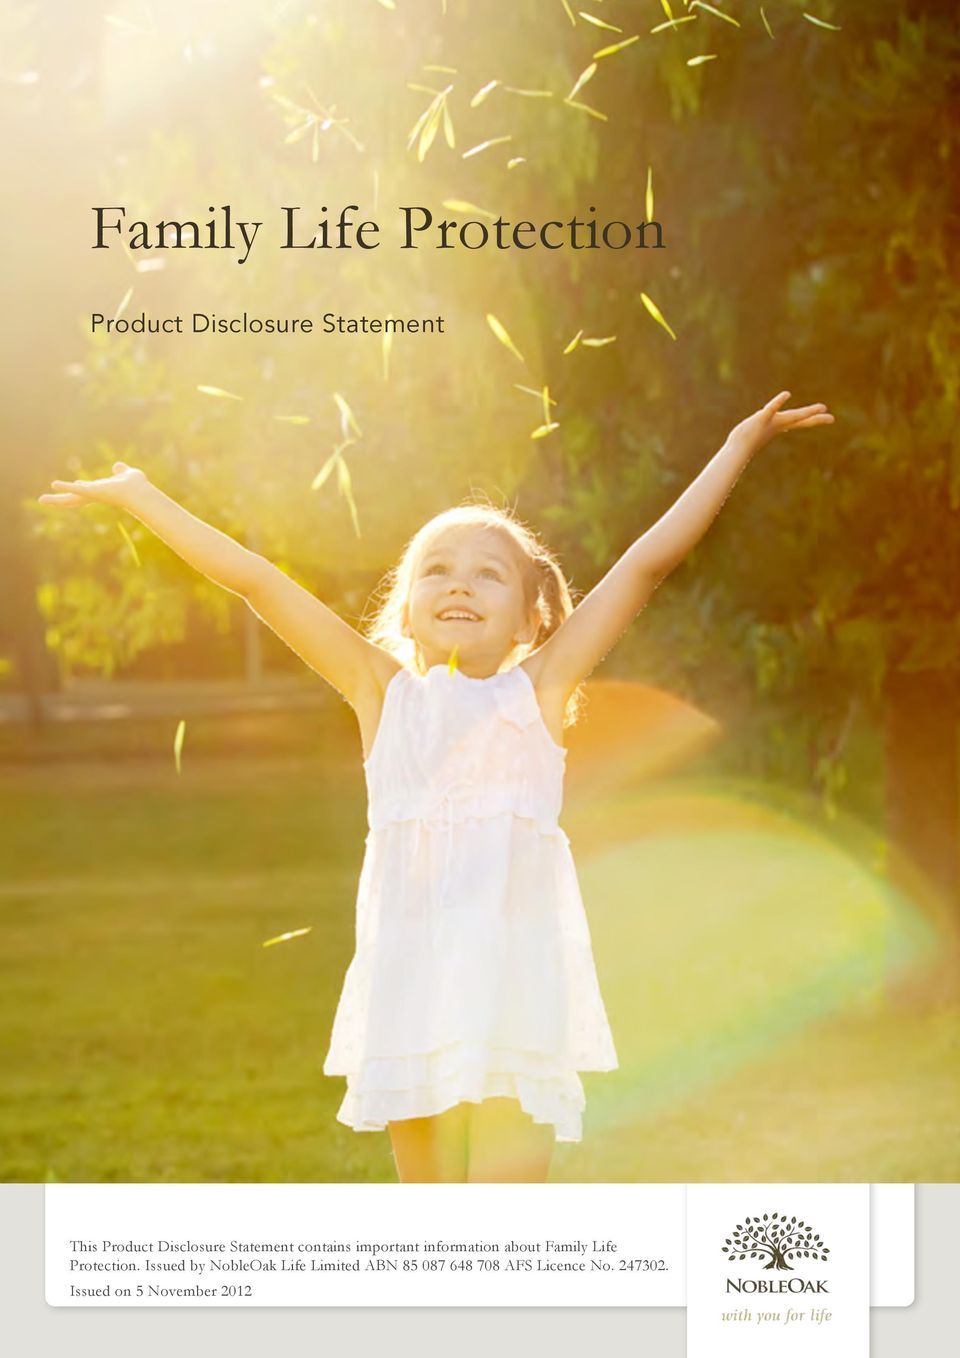 about Family Life Protection.